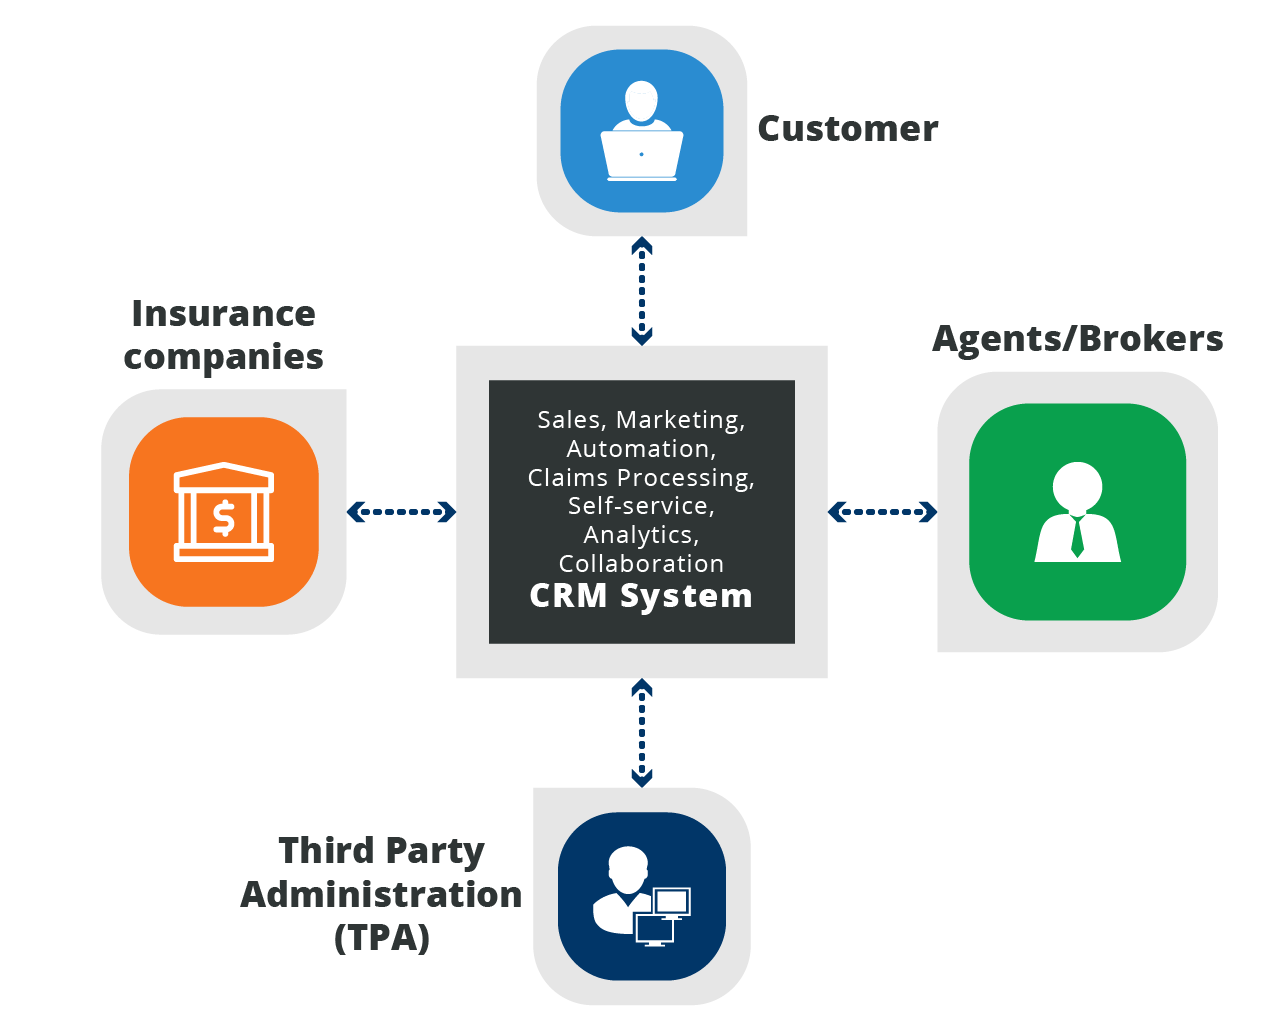 Financial-crm-insurance.png